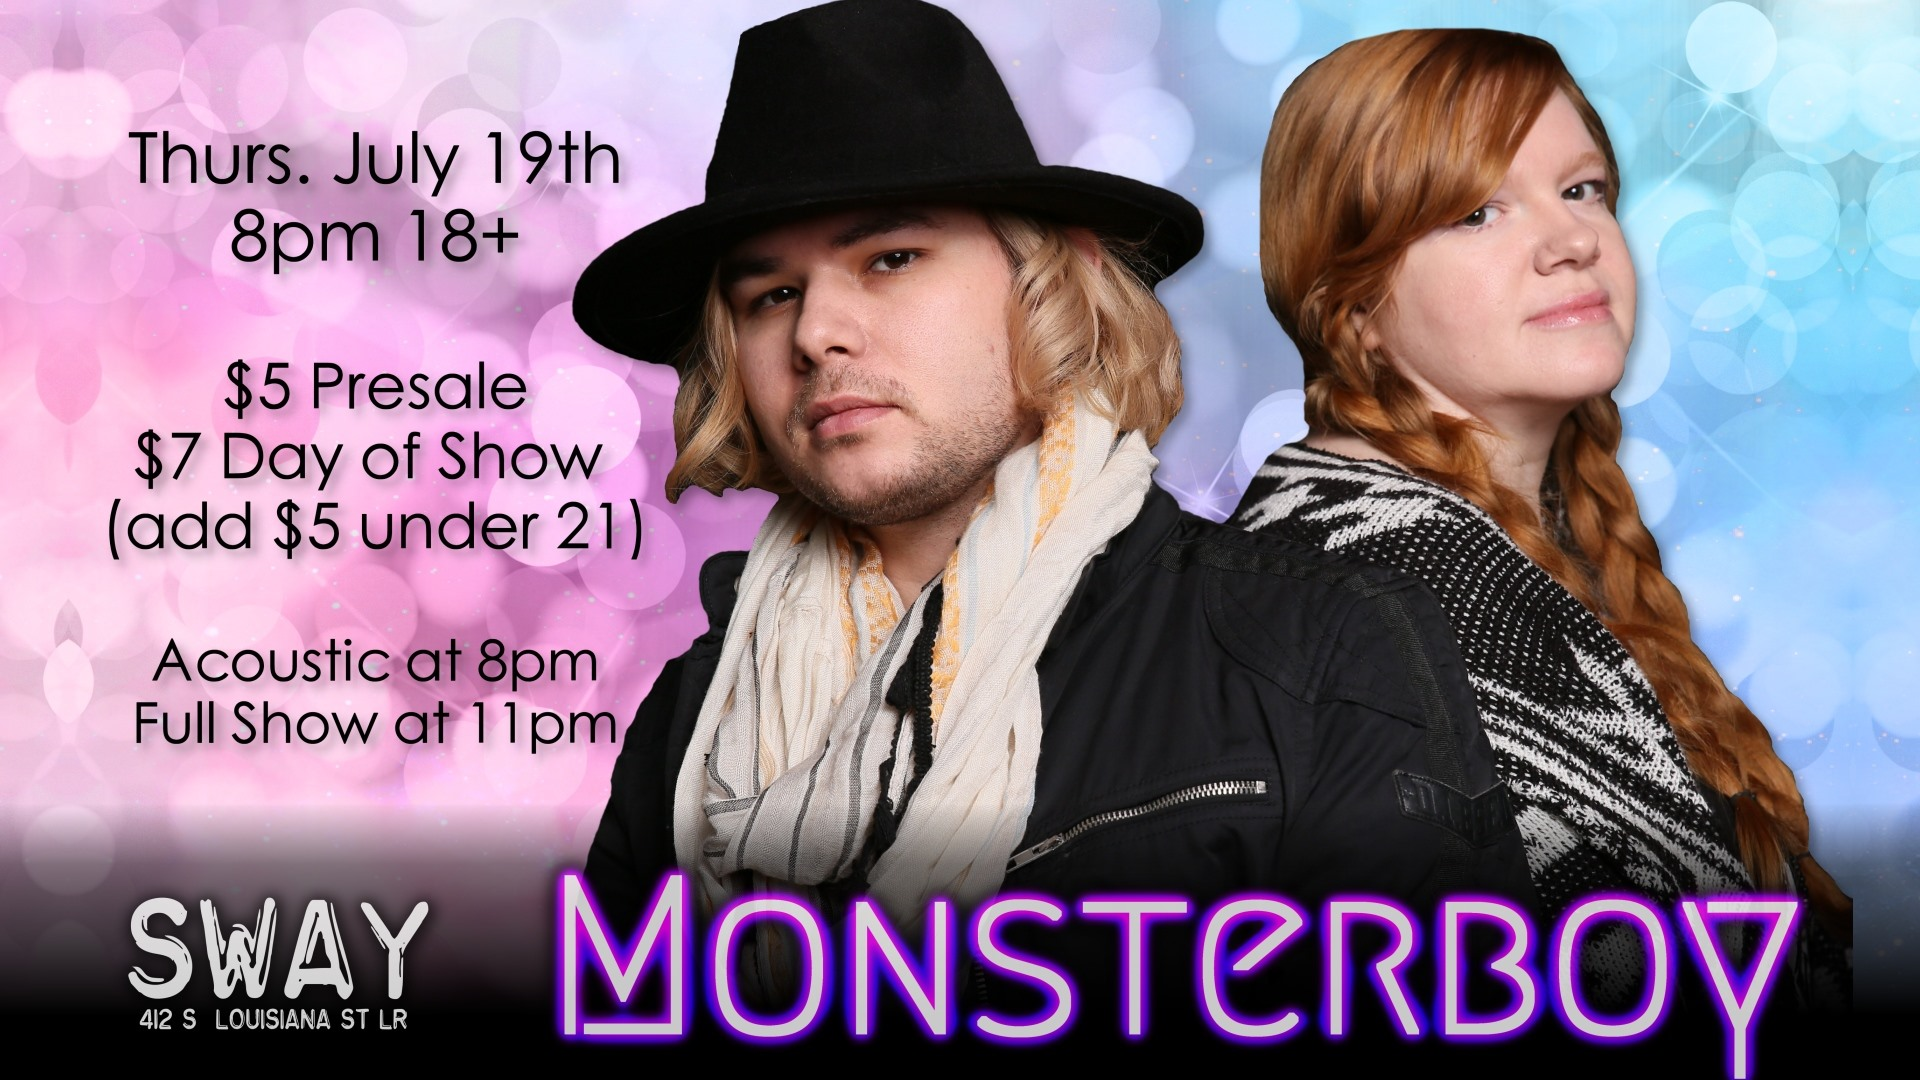 Live Music at Club Sway featuring Monsterboy